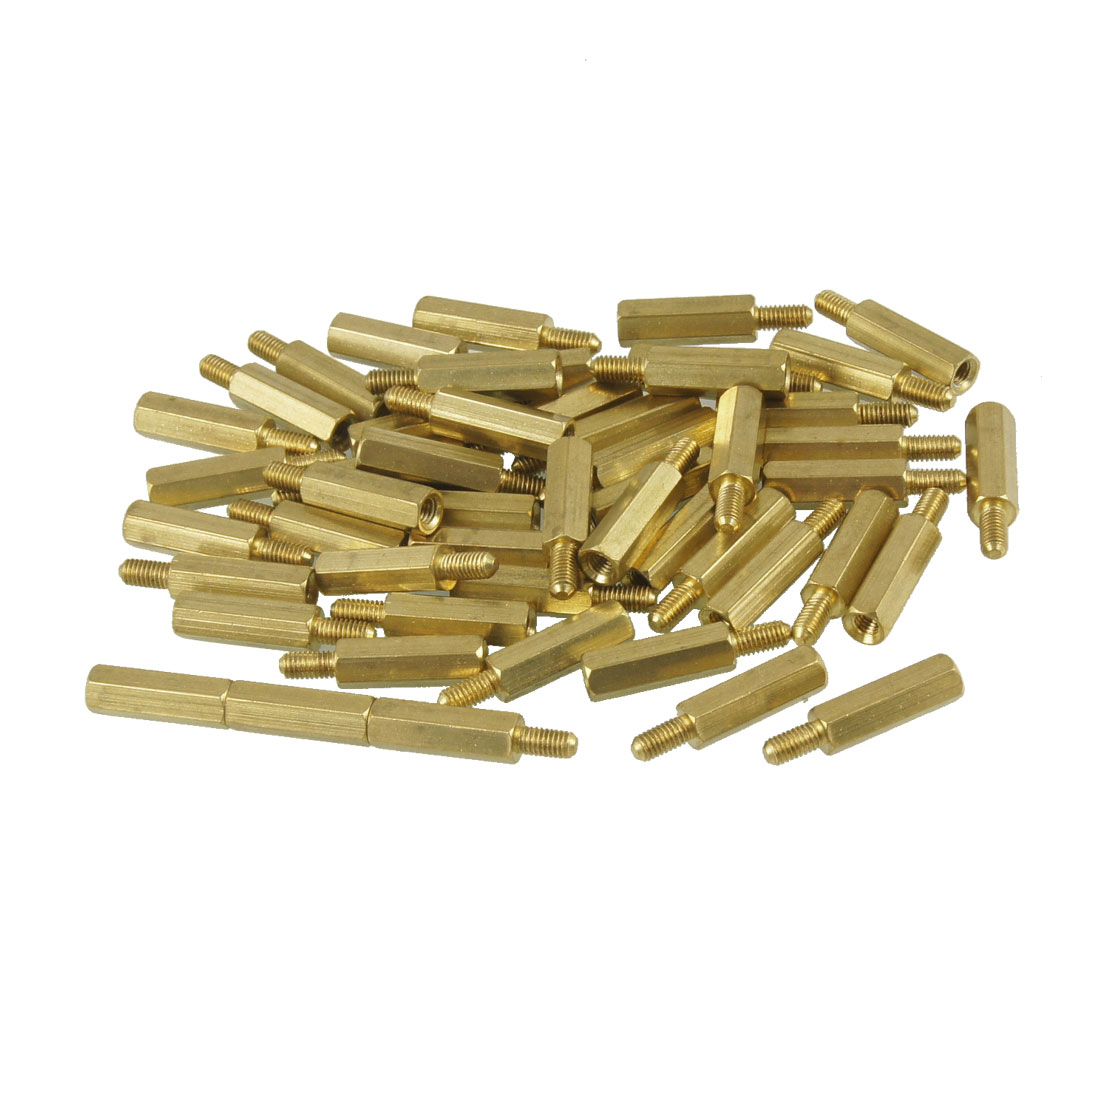 50 Pcs Screw PCB Stand-off Spacer Hex M3 Male x M3 Female 15mm Length